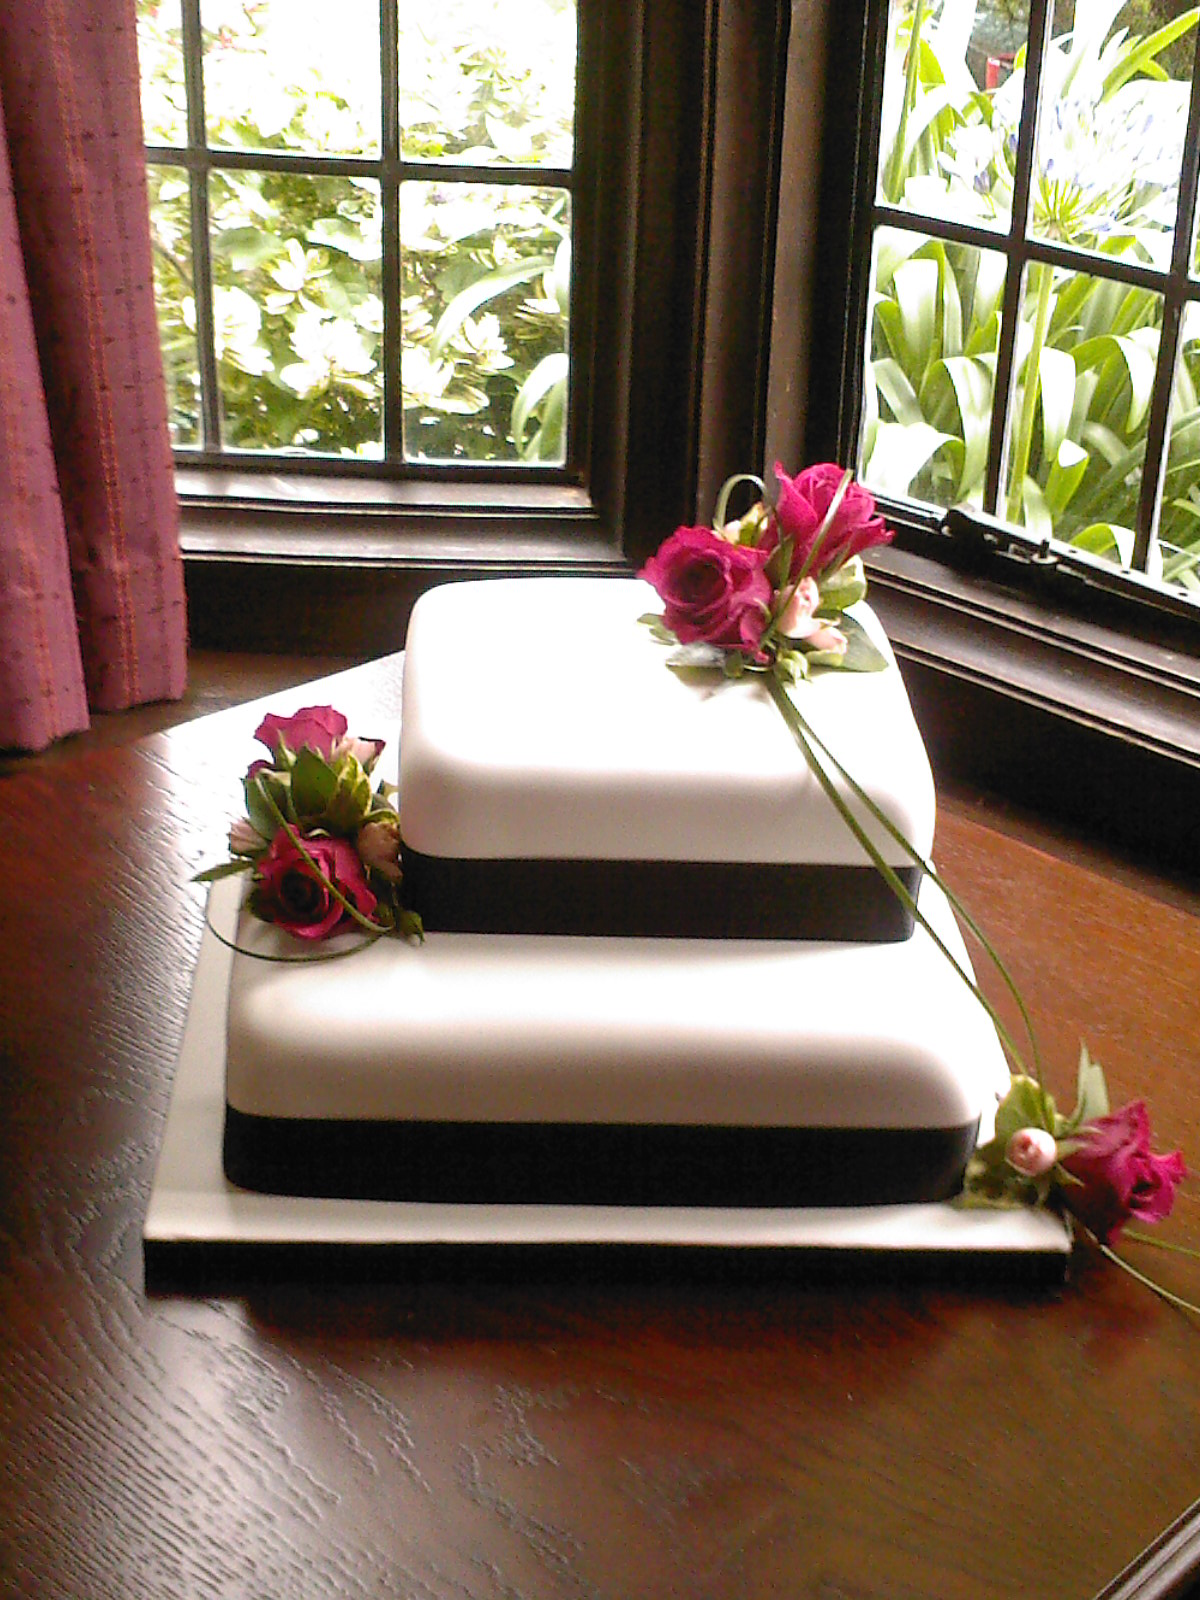 2 Tier Square Wedding Cake With Fresh Flowers 171 Susie S Cakes